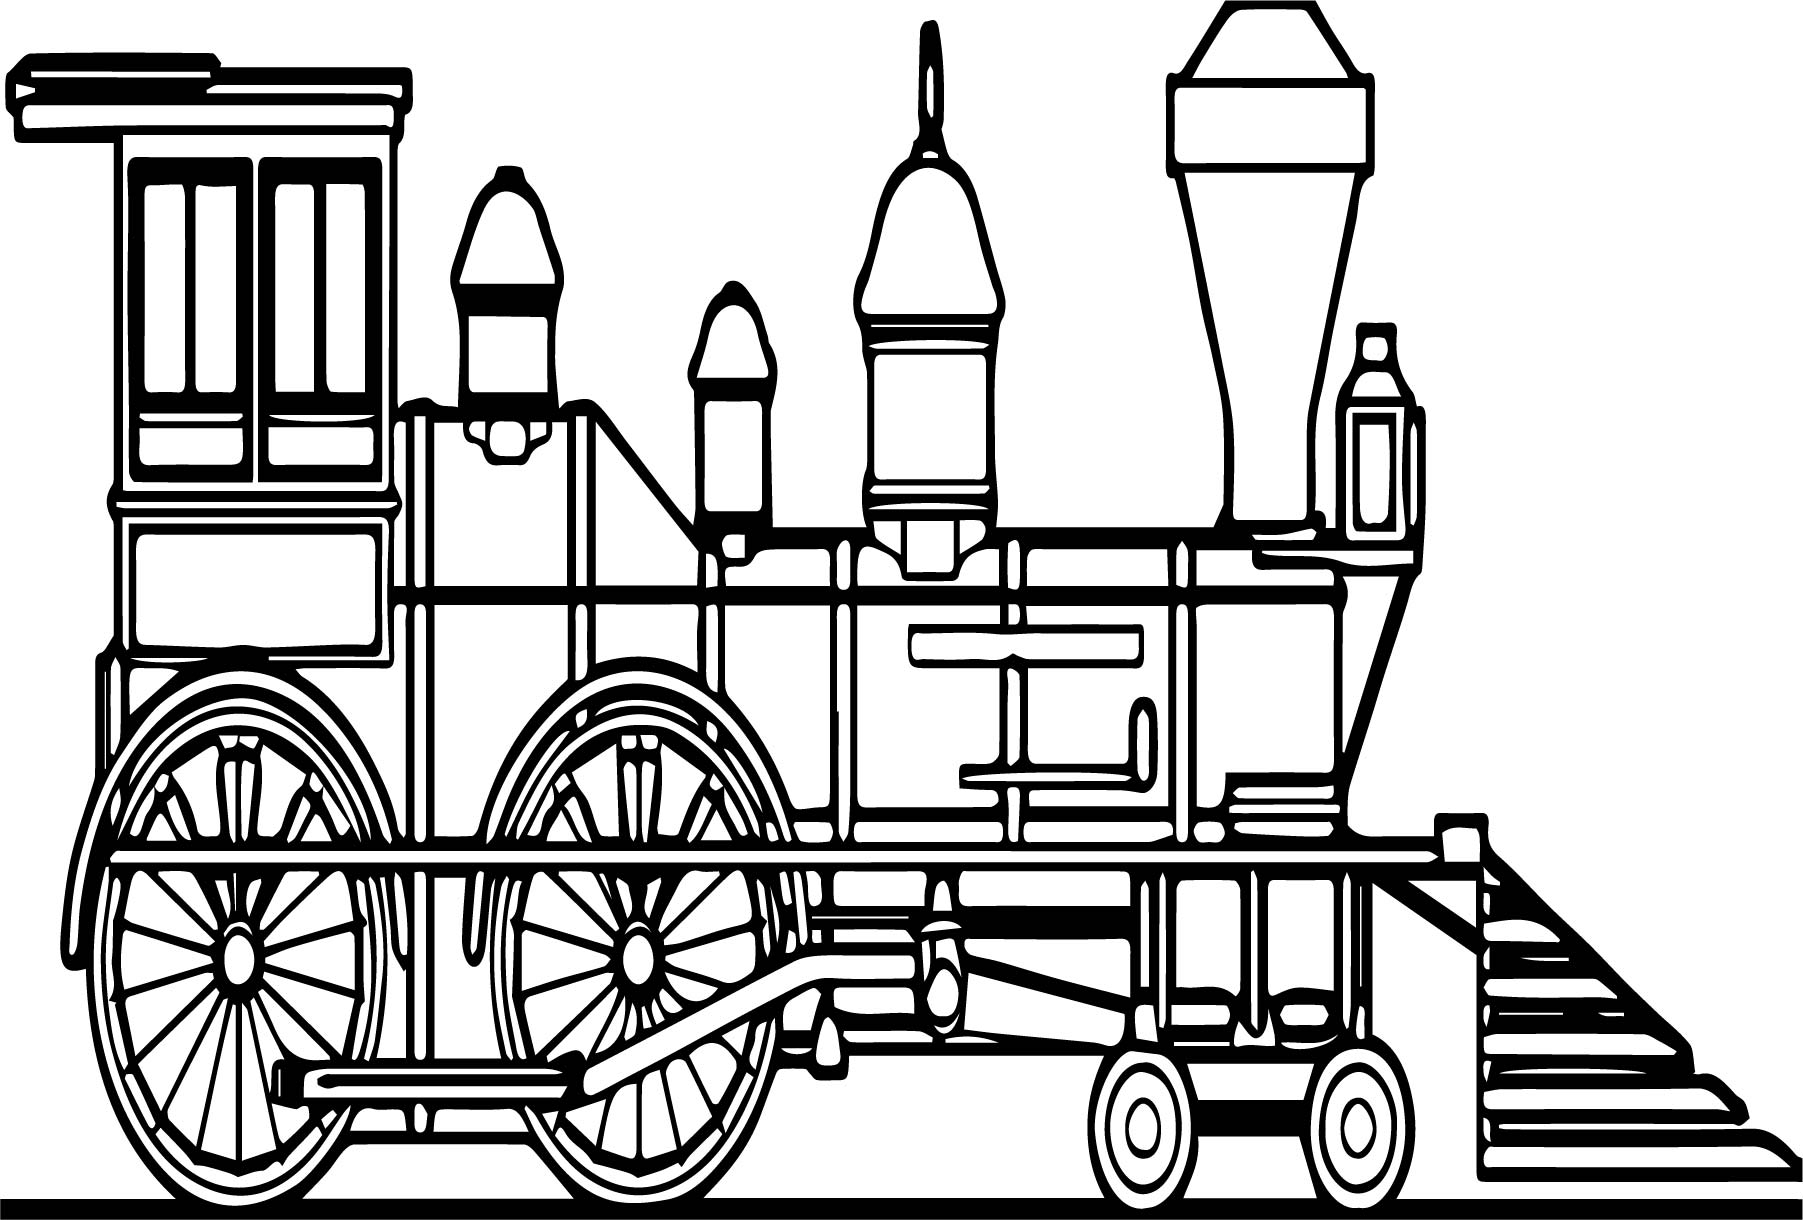 steam train colouring pages free printable train coloring pages for kids cool2bkids steam train colouring pages